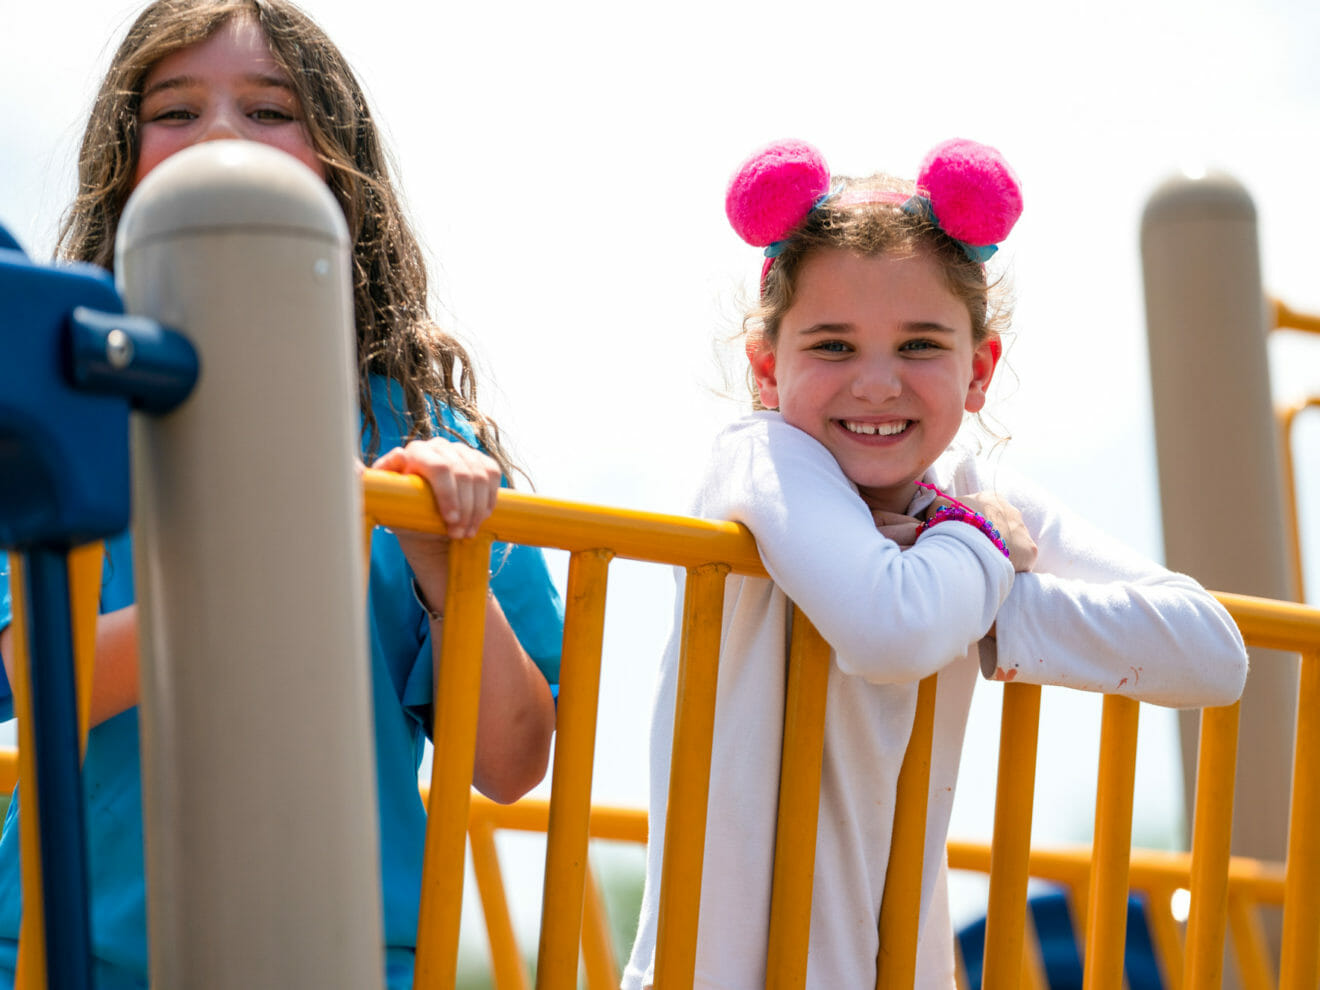 Smiling young girls stand on playground bridge